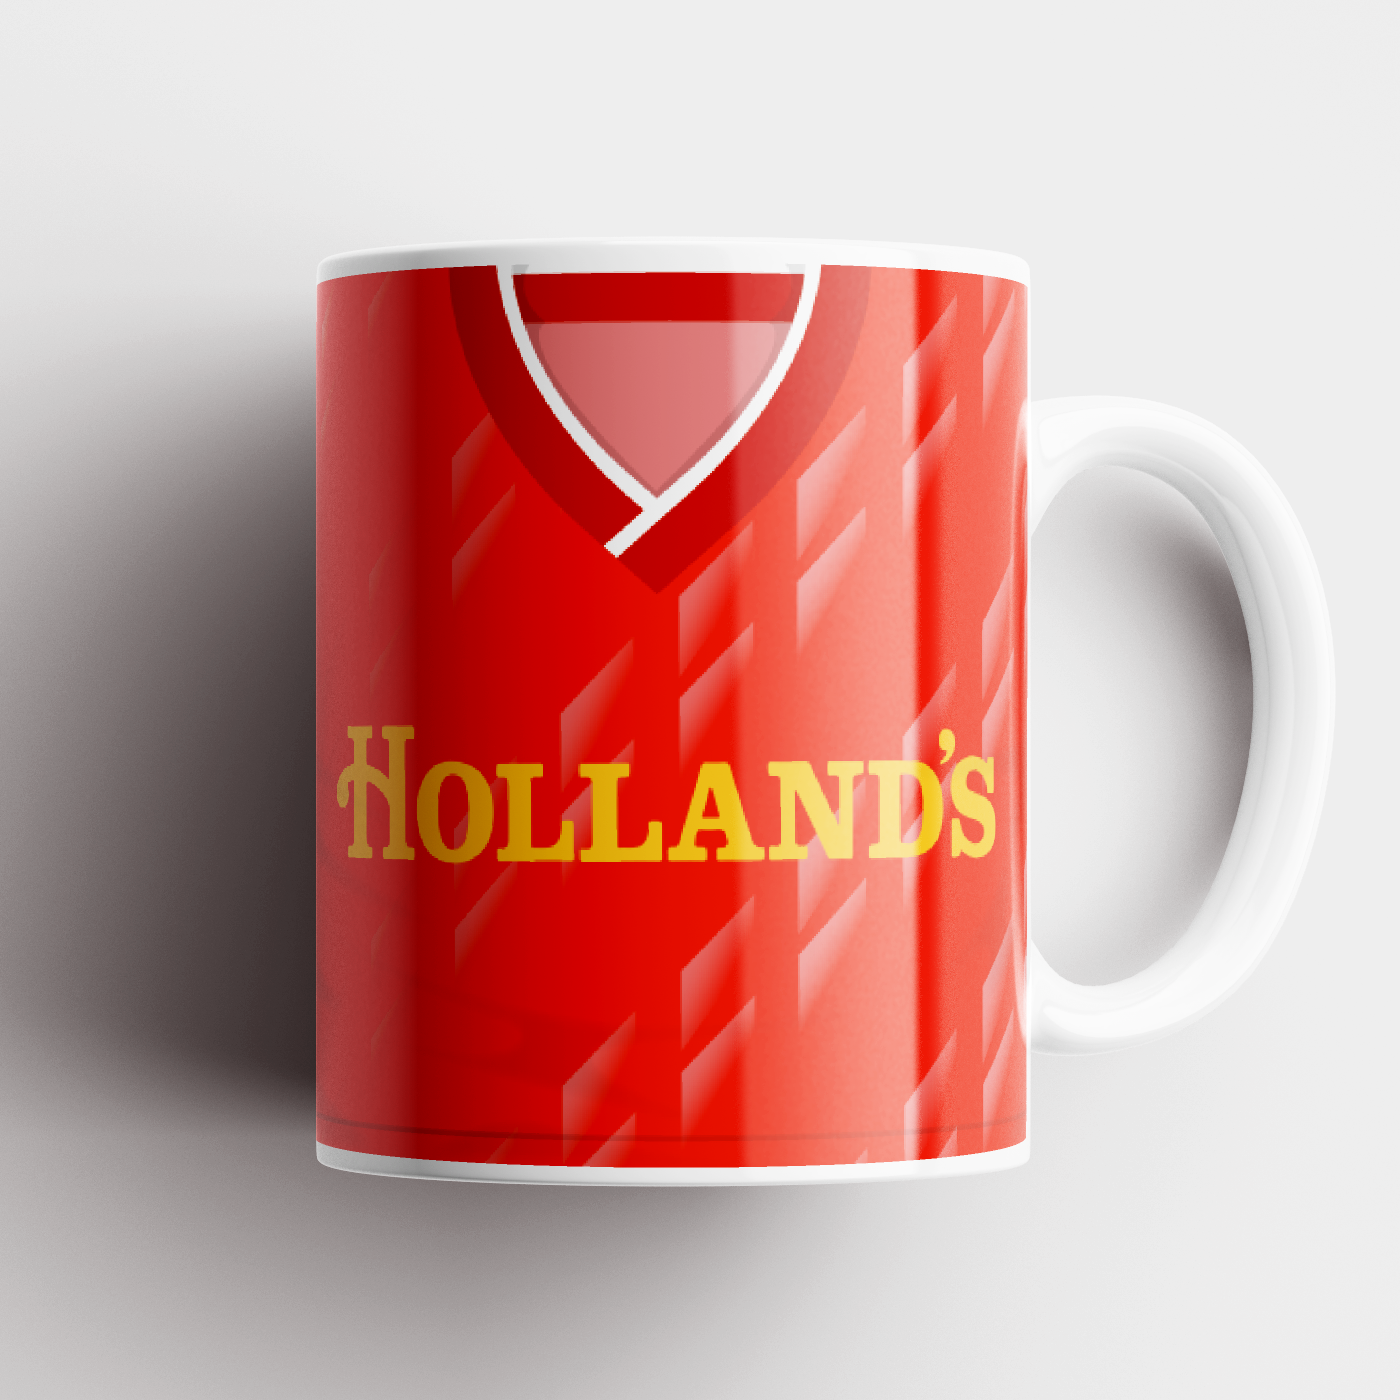 ACCRINGTON STANLEY INSPIRED CERAMIC MUG 1990 HOME